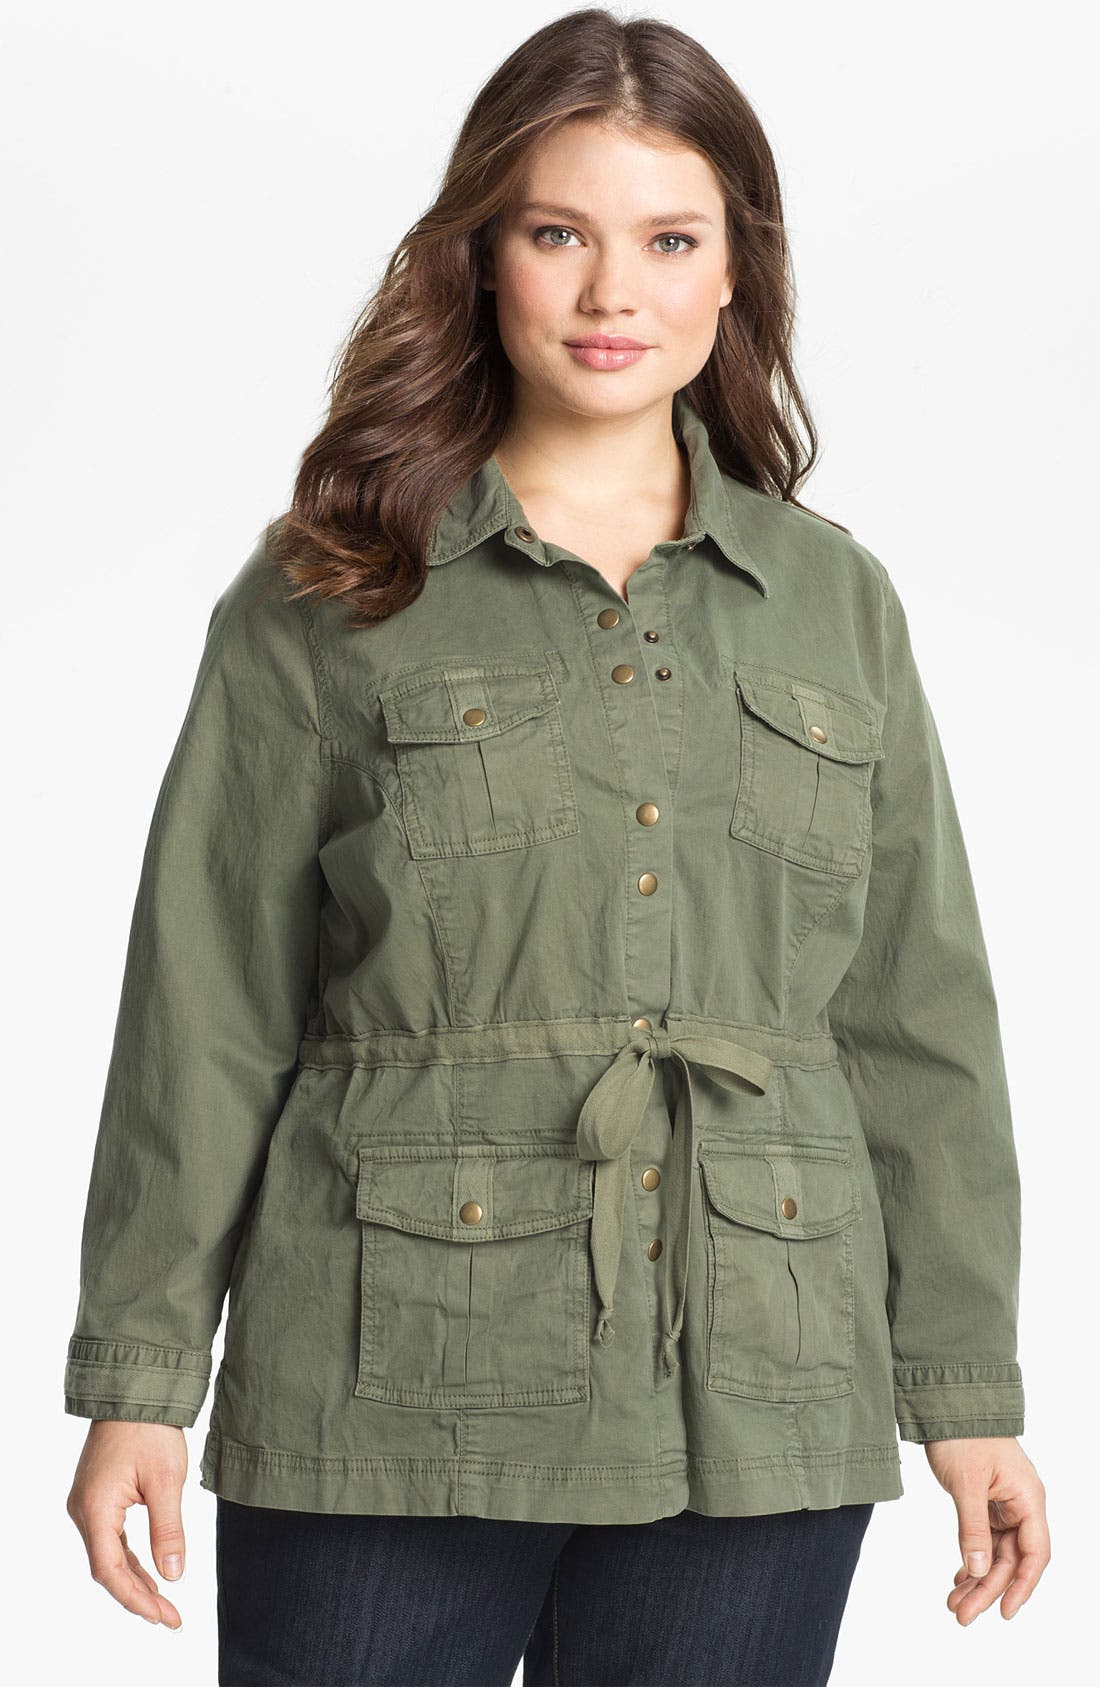 Alternate Image 1 Selected - Lucky Brand Cotton Military Jacket (Plus Size)